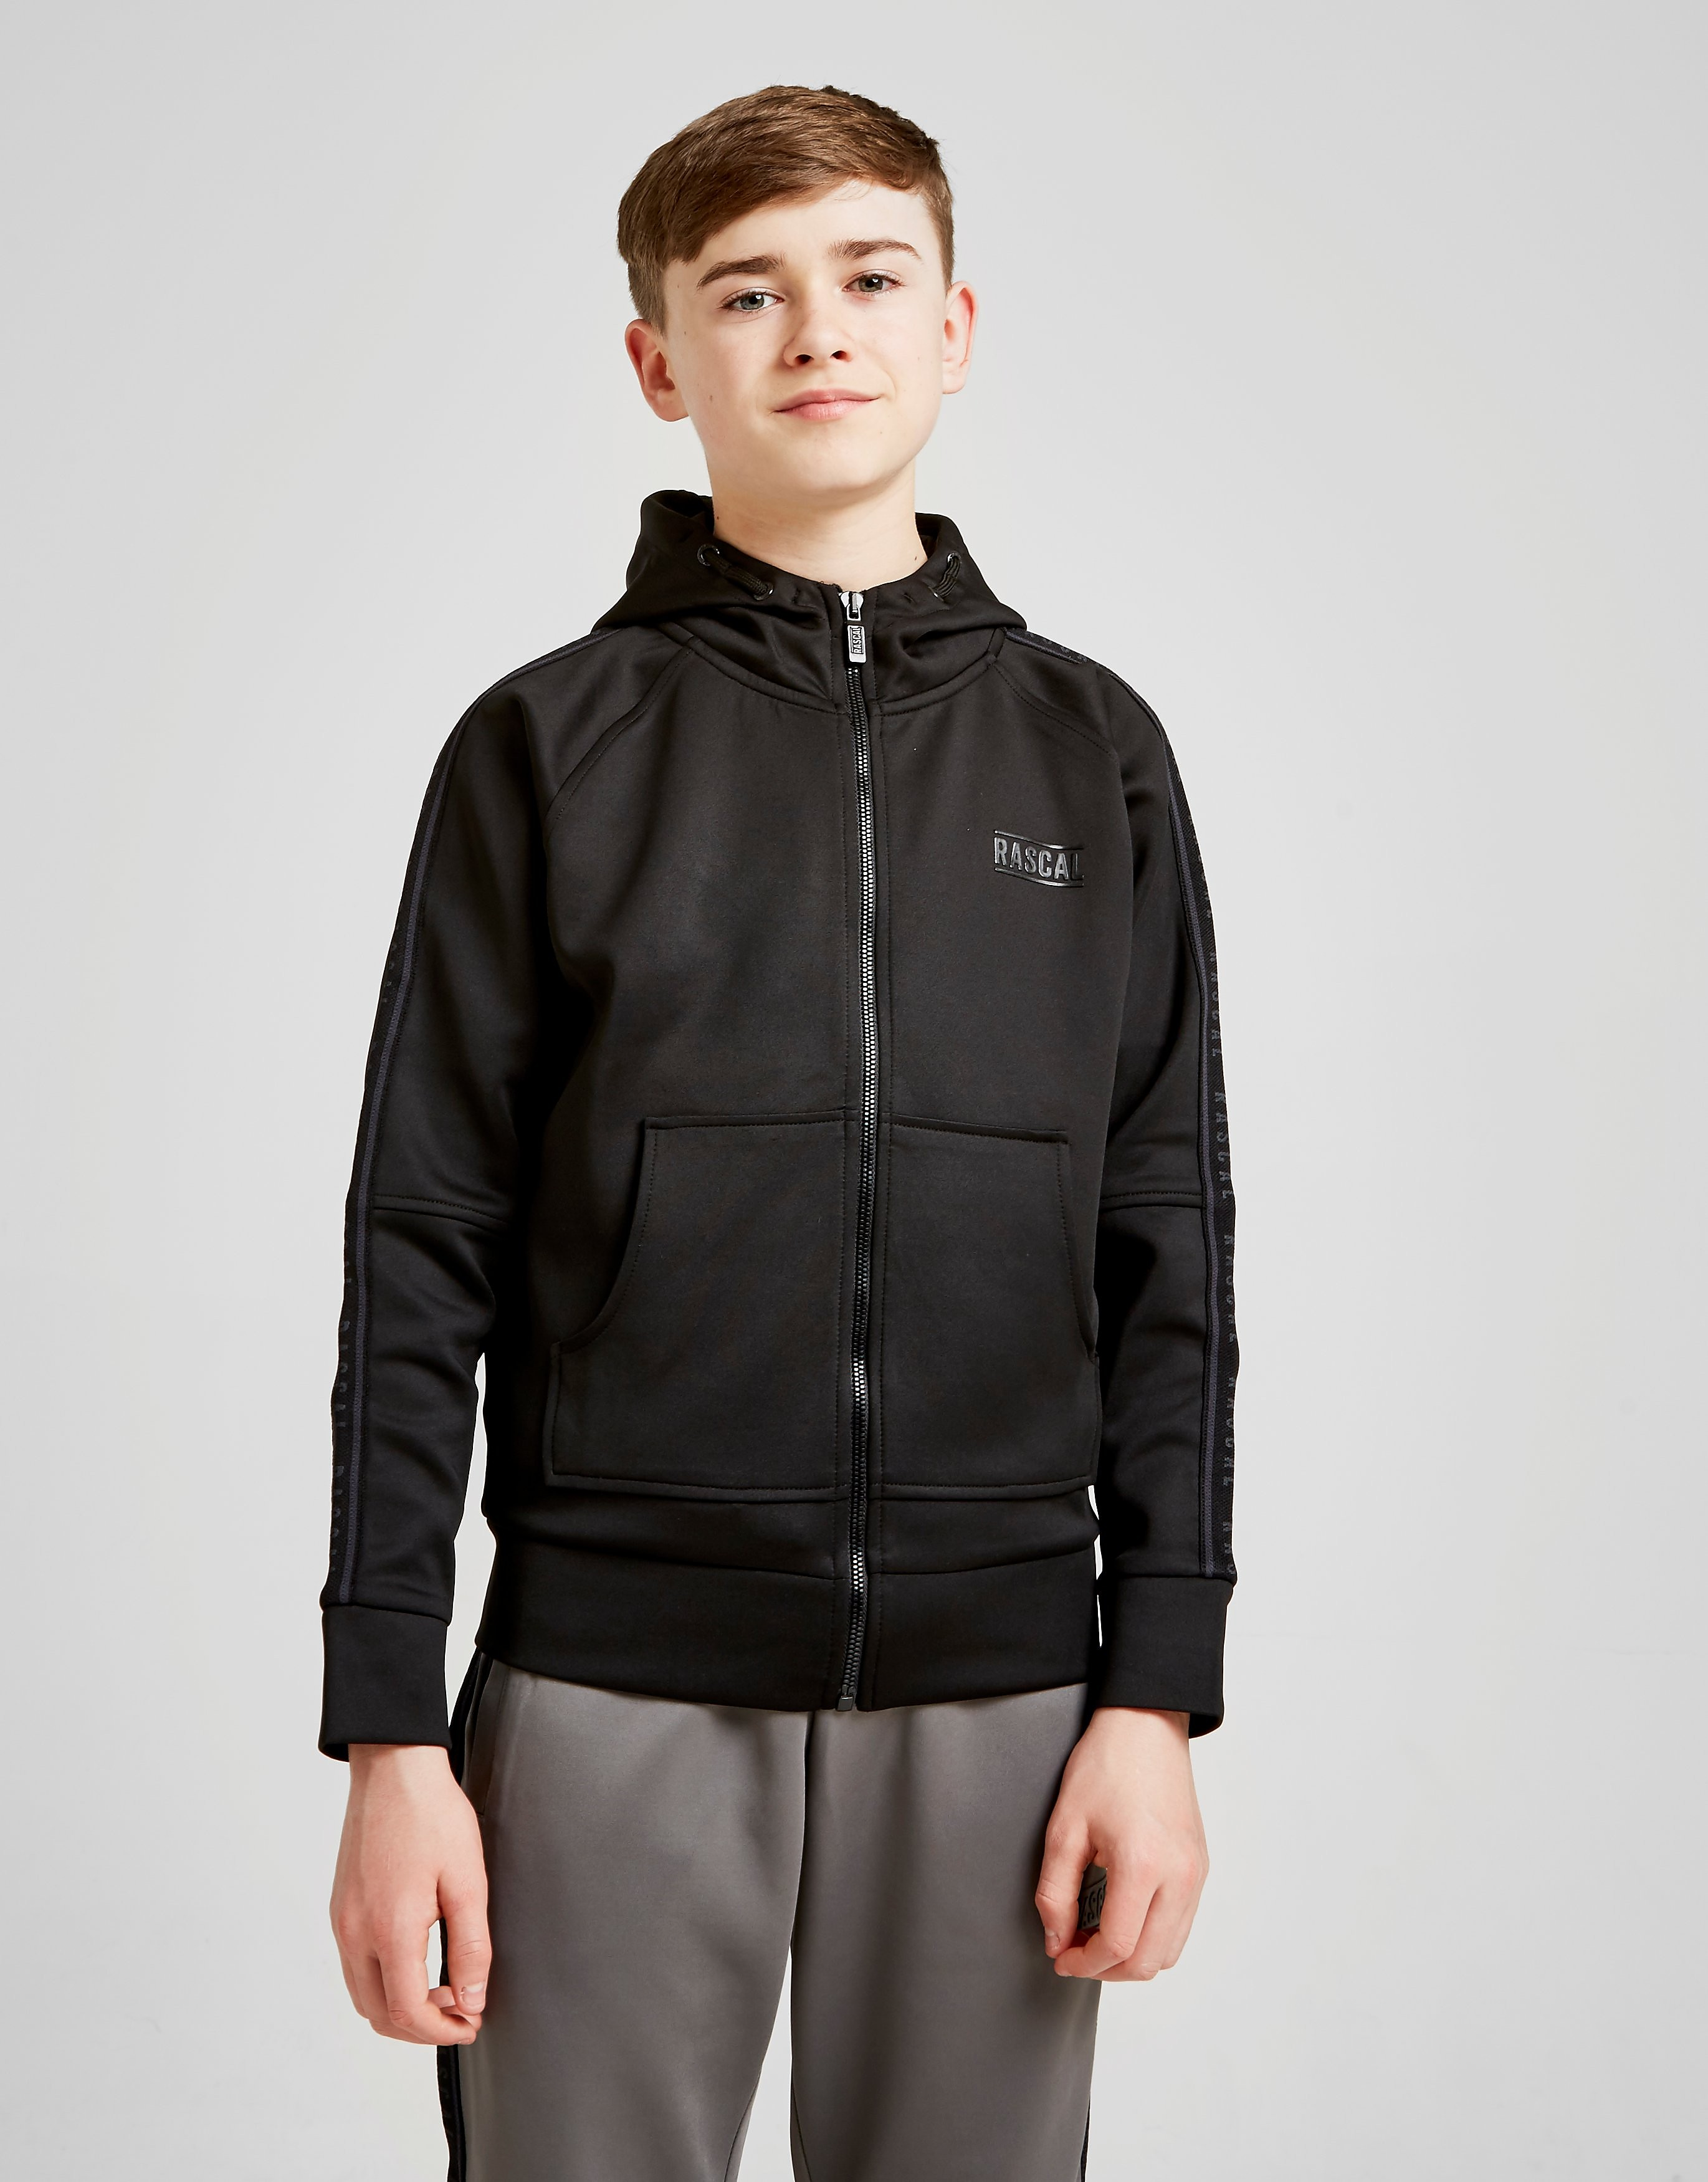 Rascal Echo Poly Full Zip Hoodie Junior - Zwart - Kind